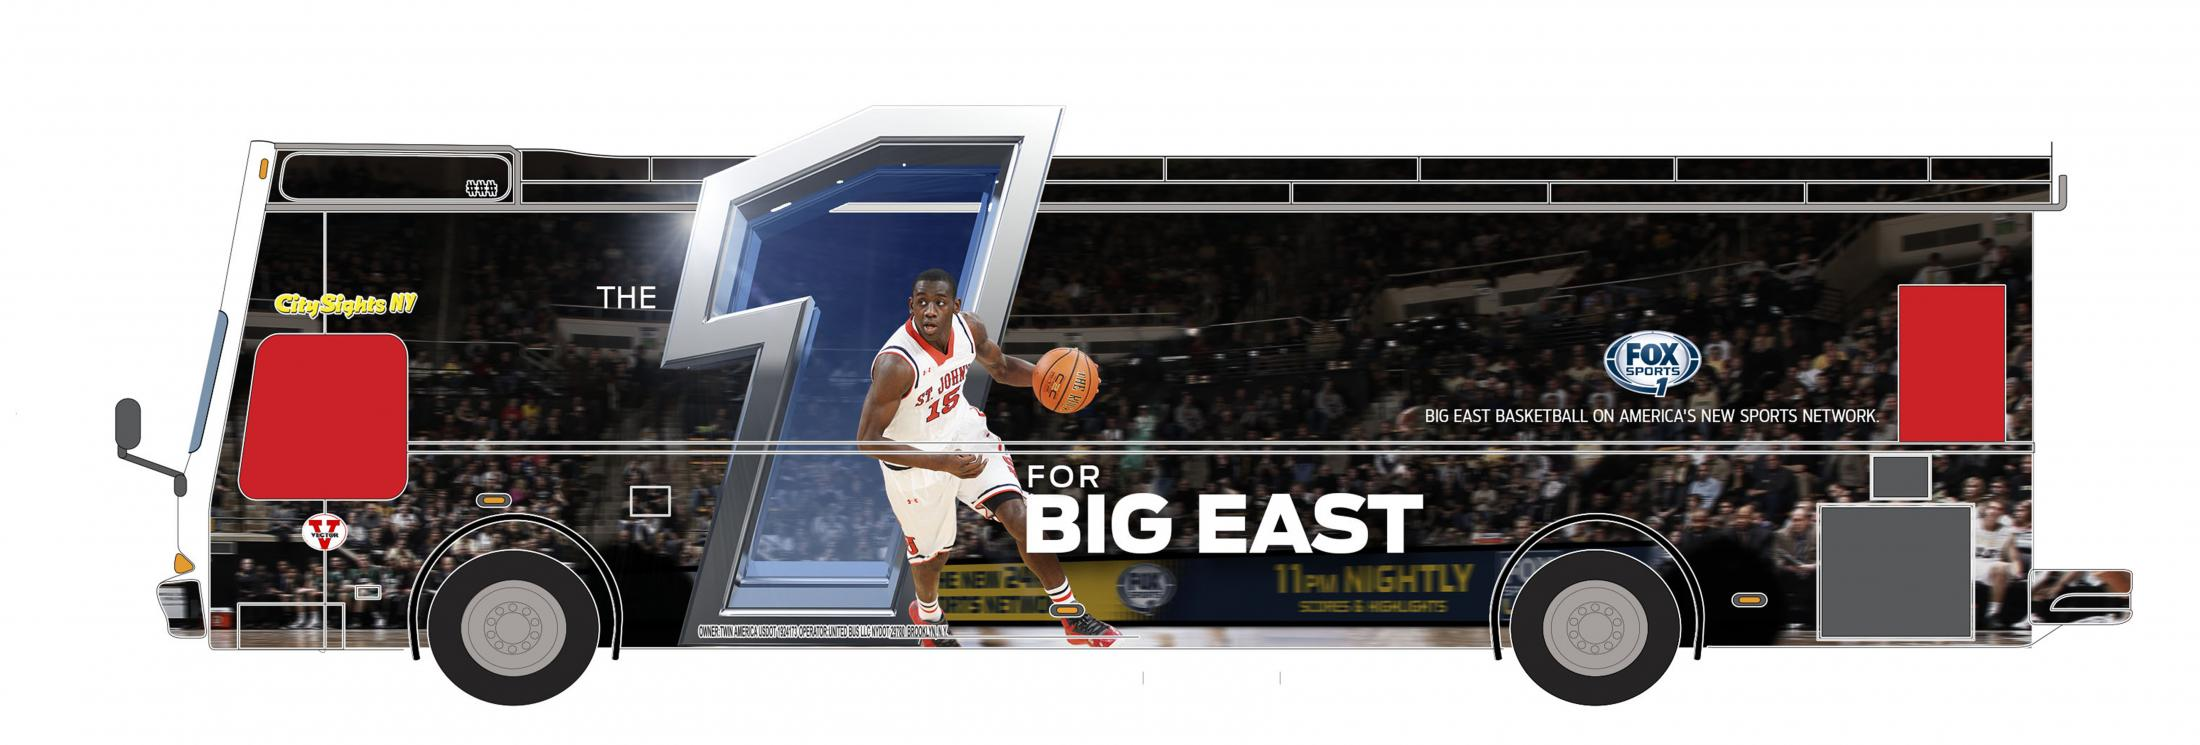 Thumbnail for SUPER BOWL BUSES - The 1 for Big East